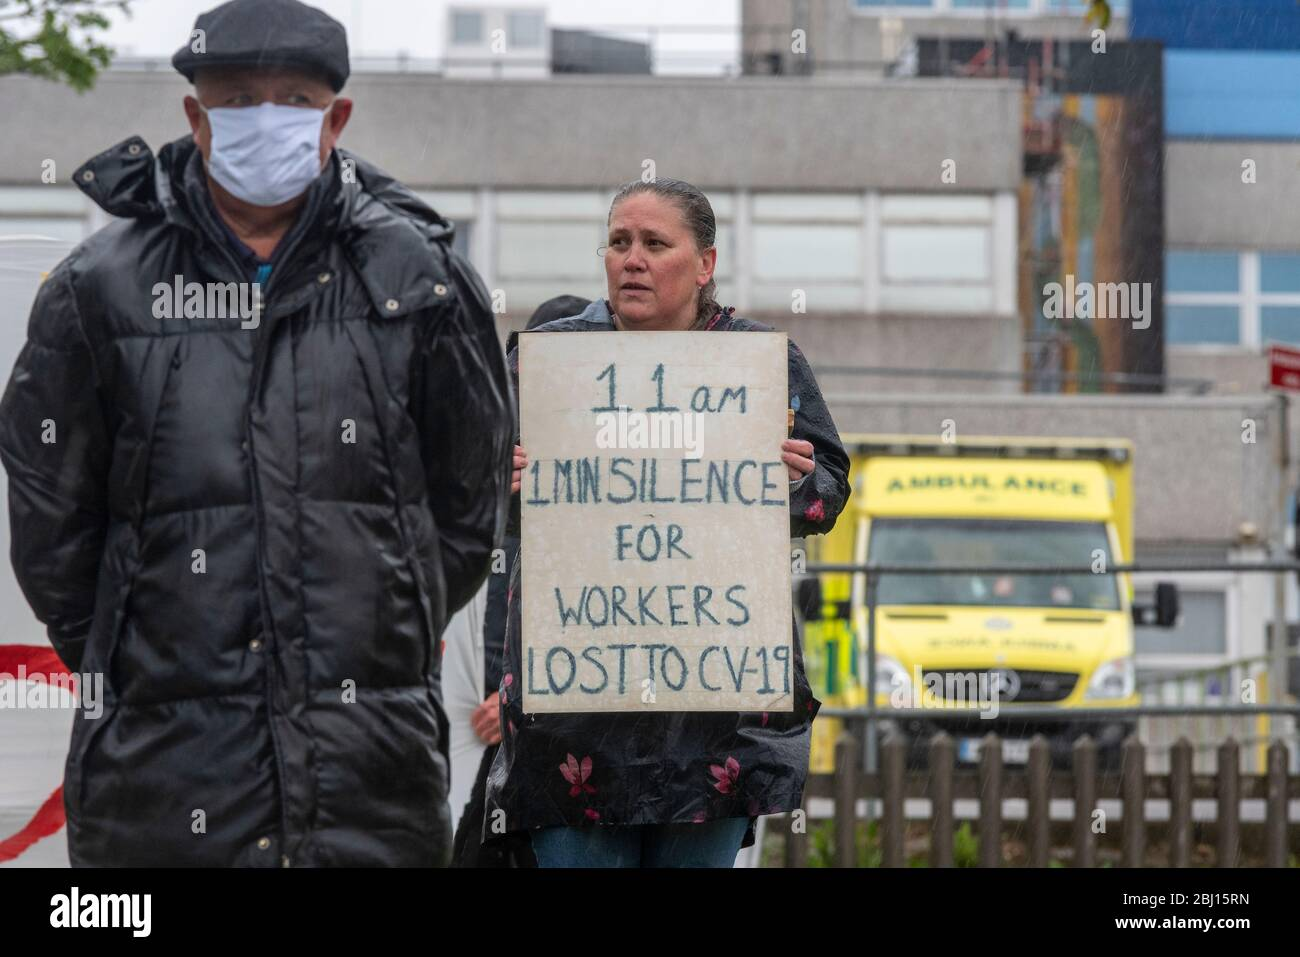 southend-university-hospital-southend-on-sea-essex-uk-28th-apr-2020-on-international-workers-memorial-day-a-one-minutes-silence-took-place-at-11am-to-remember-the-health-and-social-care-and-other-key-workers-that-have-died-as-a-result-of-the-covid-19-coronavirus-pandemic-pairs-of-shoes-have-been-placed-on-the-green-outside-southends-hospital-as-a-visual-reminder-of-the-more-than-one-hundred-frontline-staff-who-have-lost-their-lives-including-a-number-from-southend-2BJ15RN.jpg